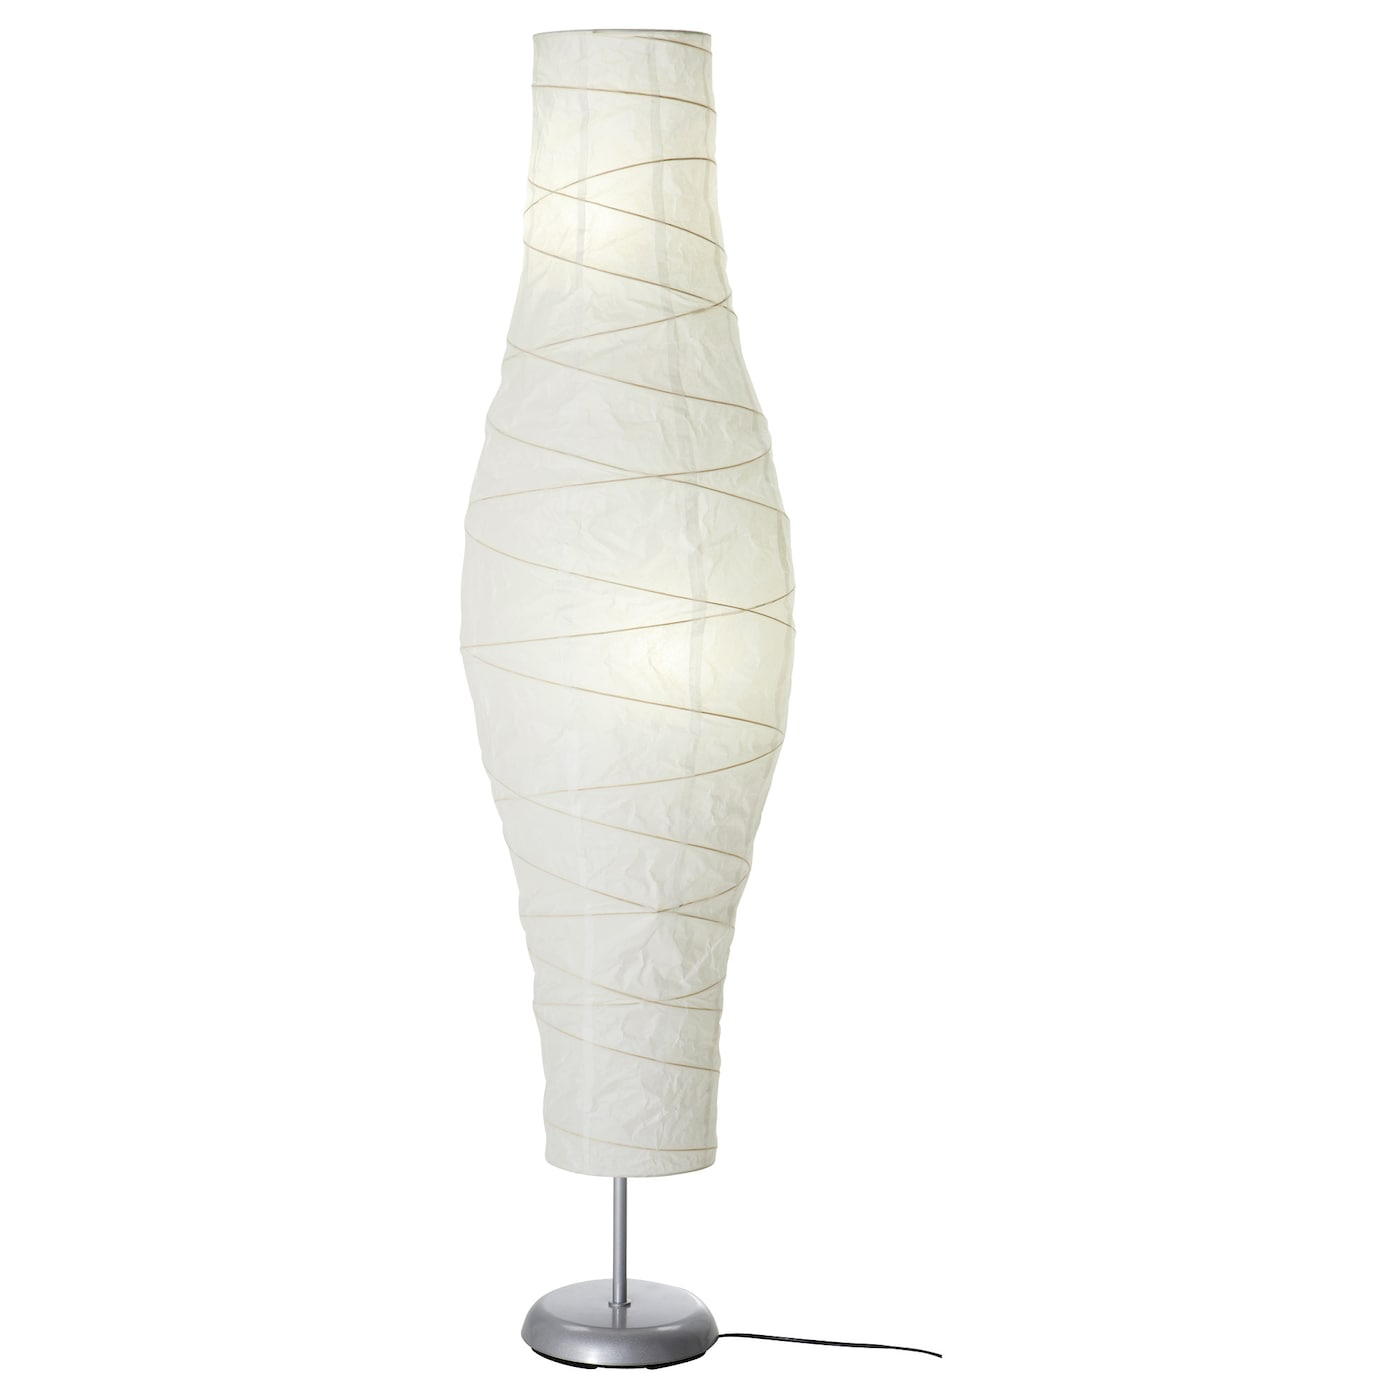 ikea lighting usa. ikea duder floor lamp gives a soft mood light ikea lighting usa